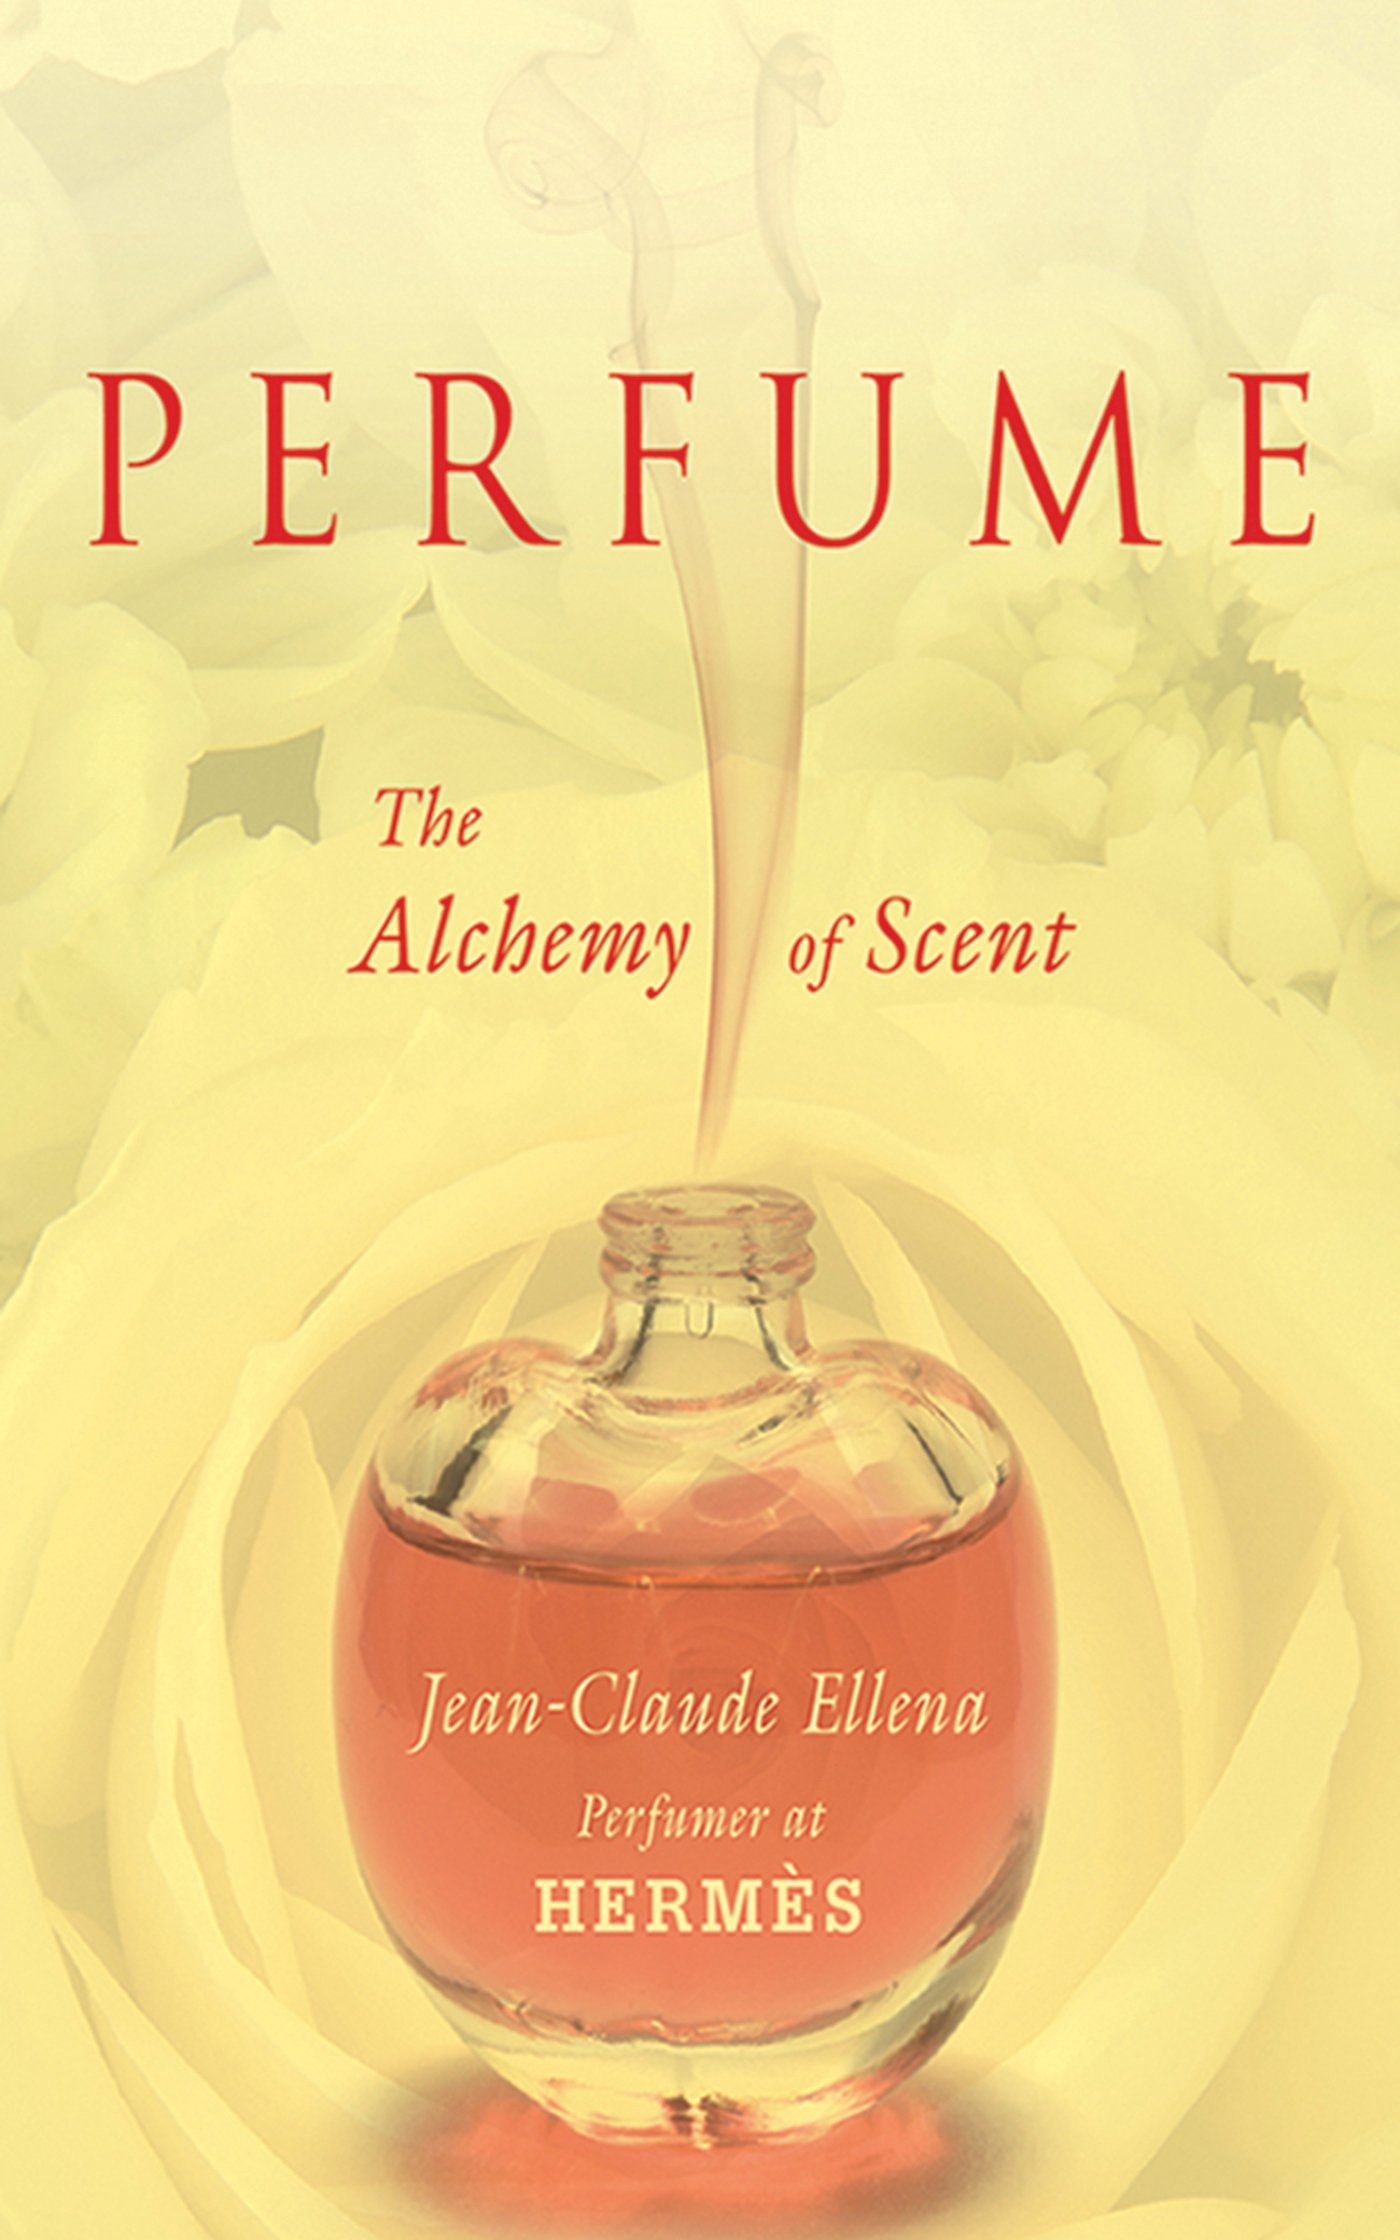 perfume the alchemy of scent jean claude ellena 9781611453300 perfume the alchemy of scent jean claude ellena 9781611453300 com books